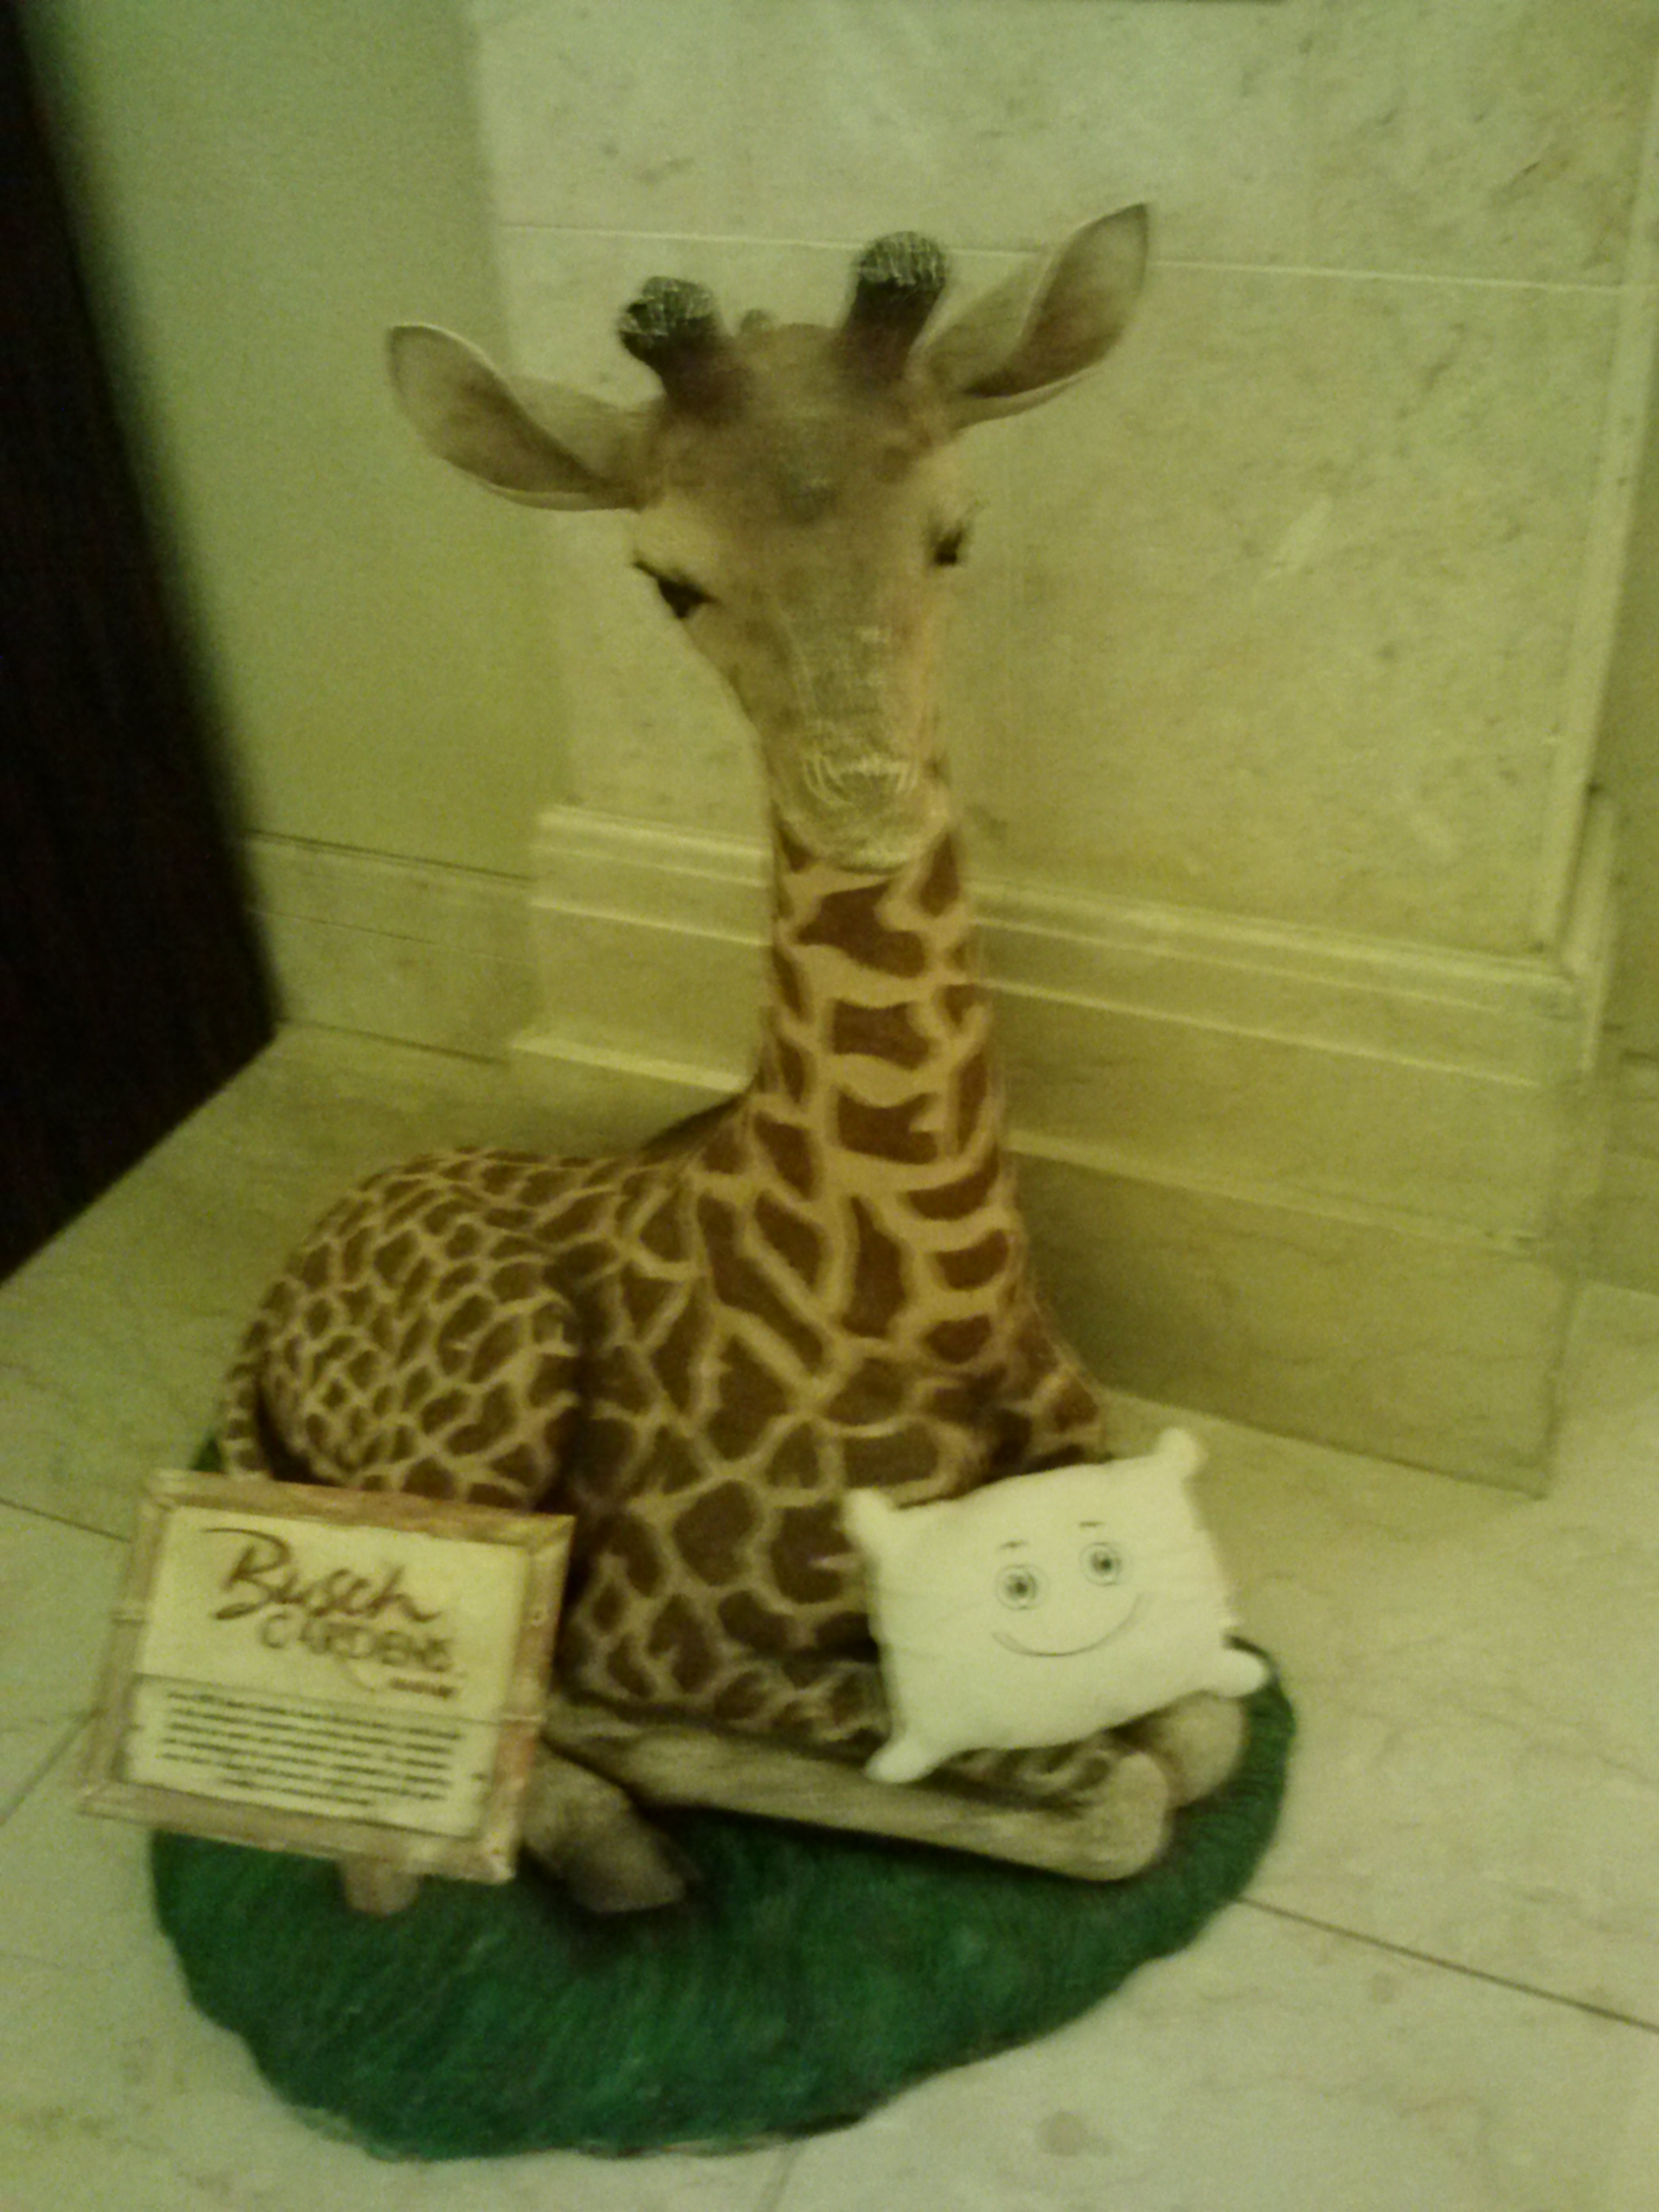 McStuffy wants to visit Busch Gardens. Maybe someday?